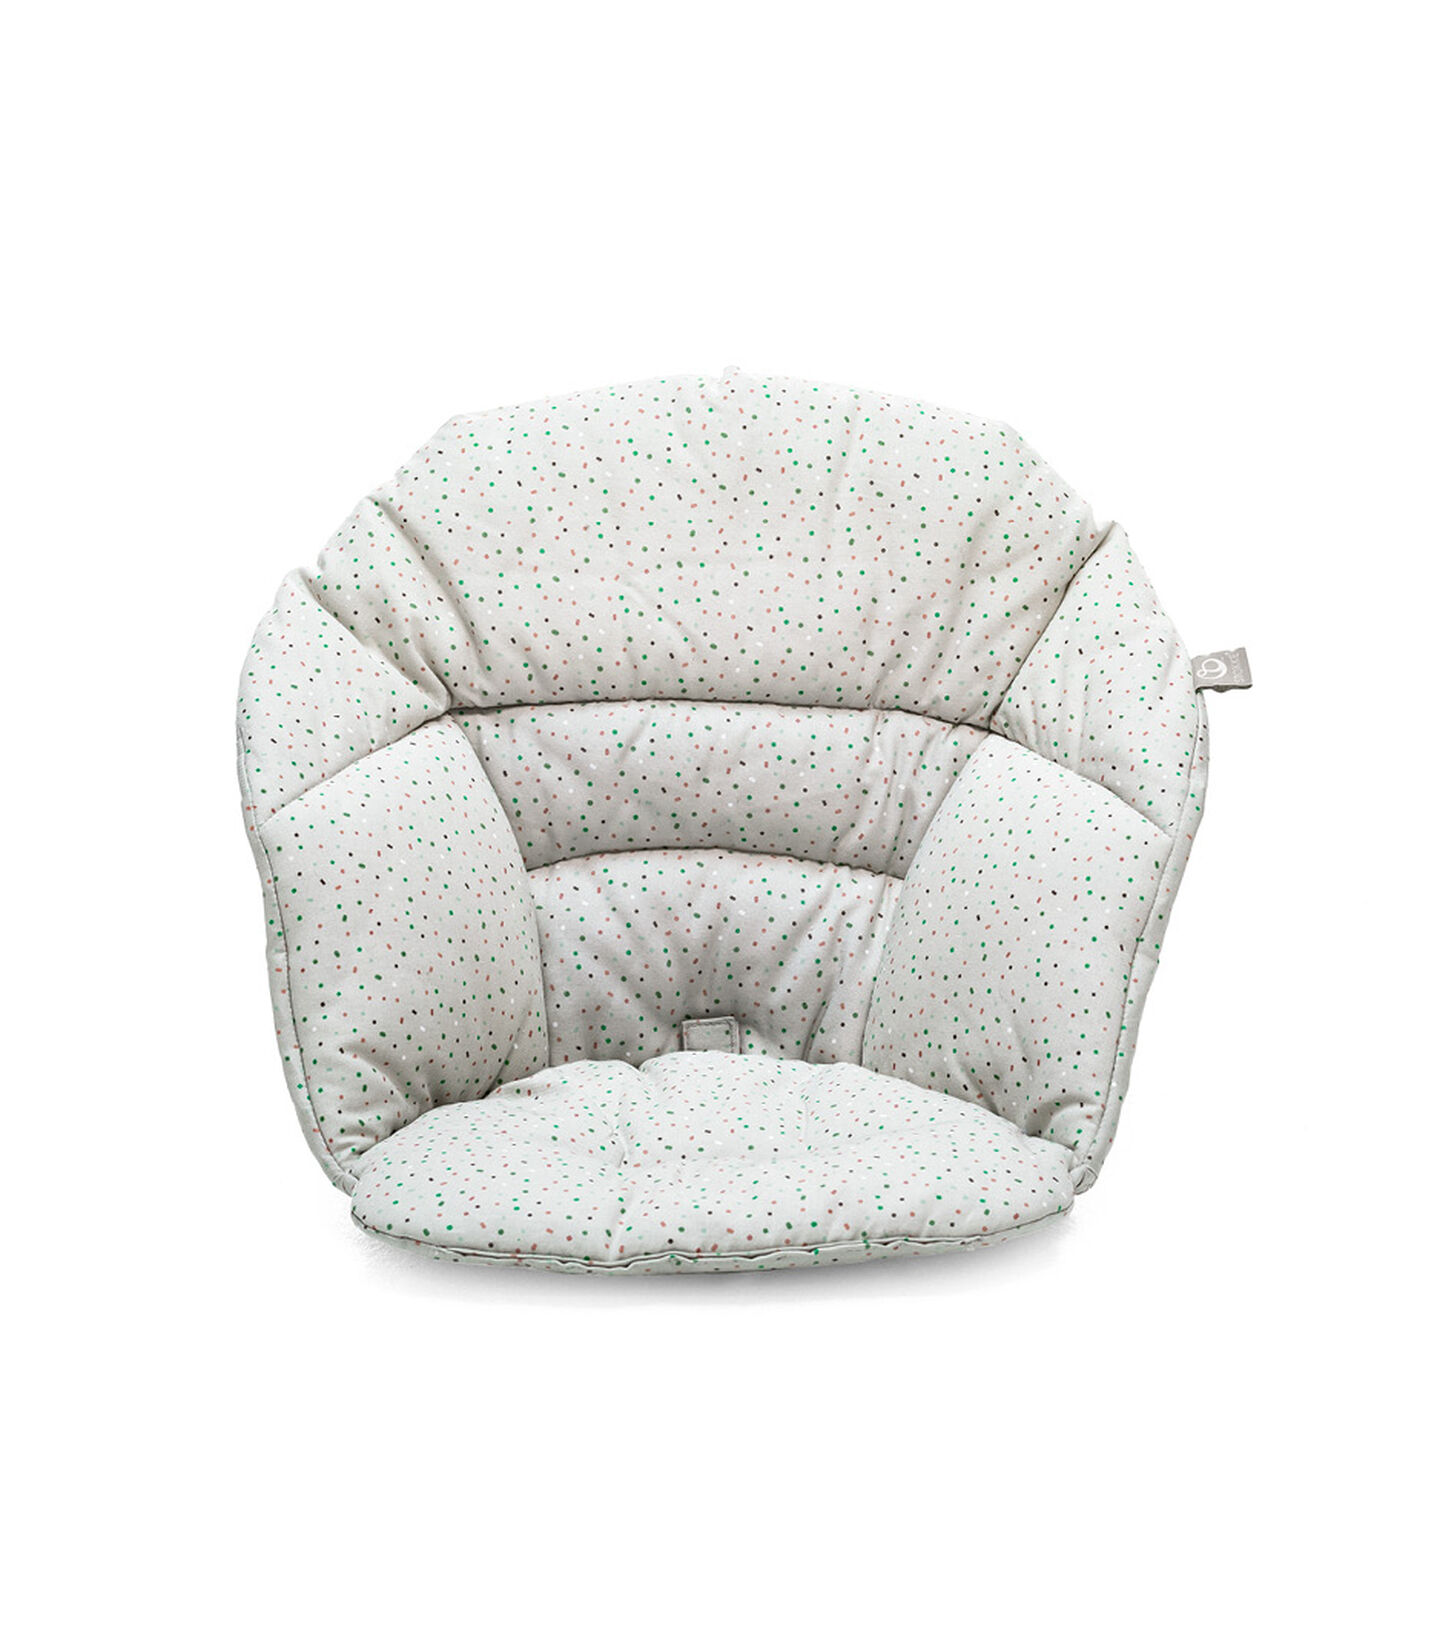 Stokke® Clikk™ Cushion in Grey Sprinkle. view 2